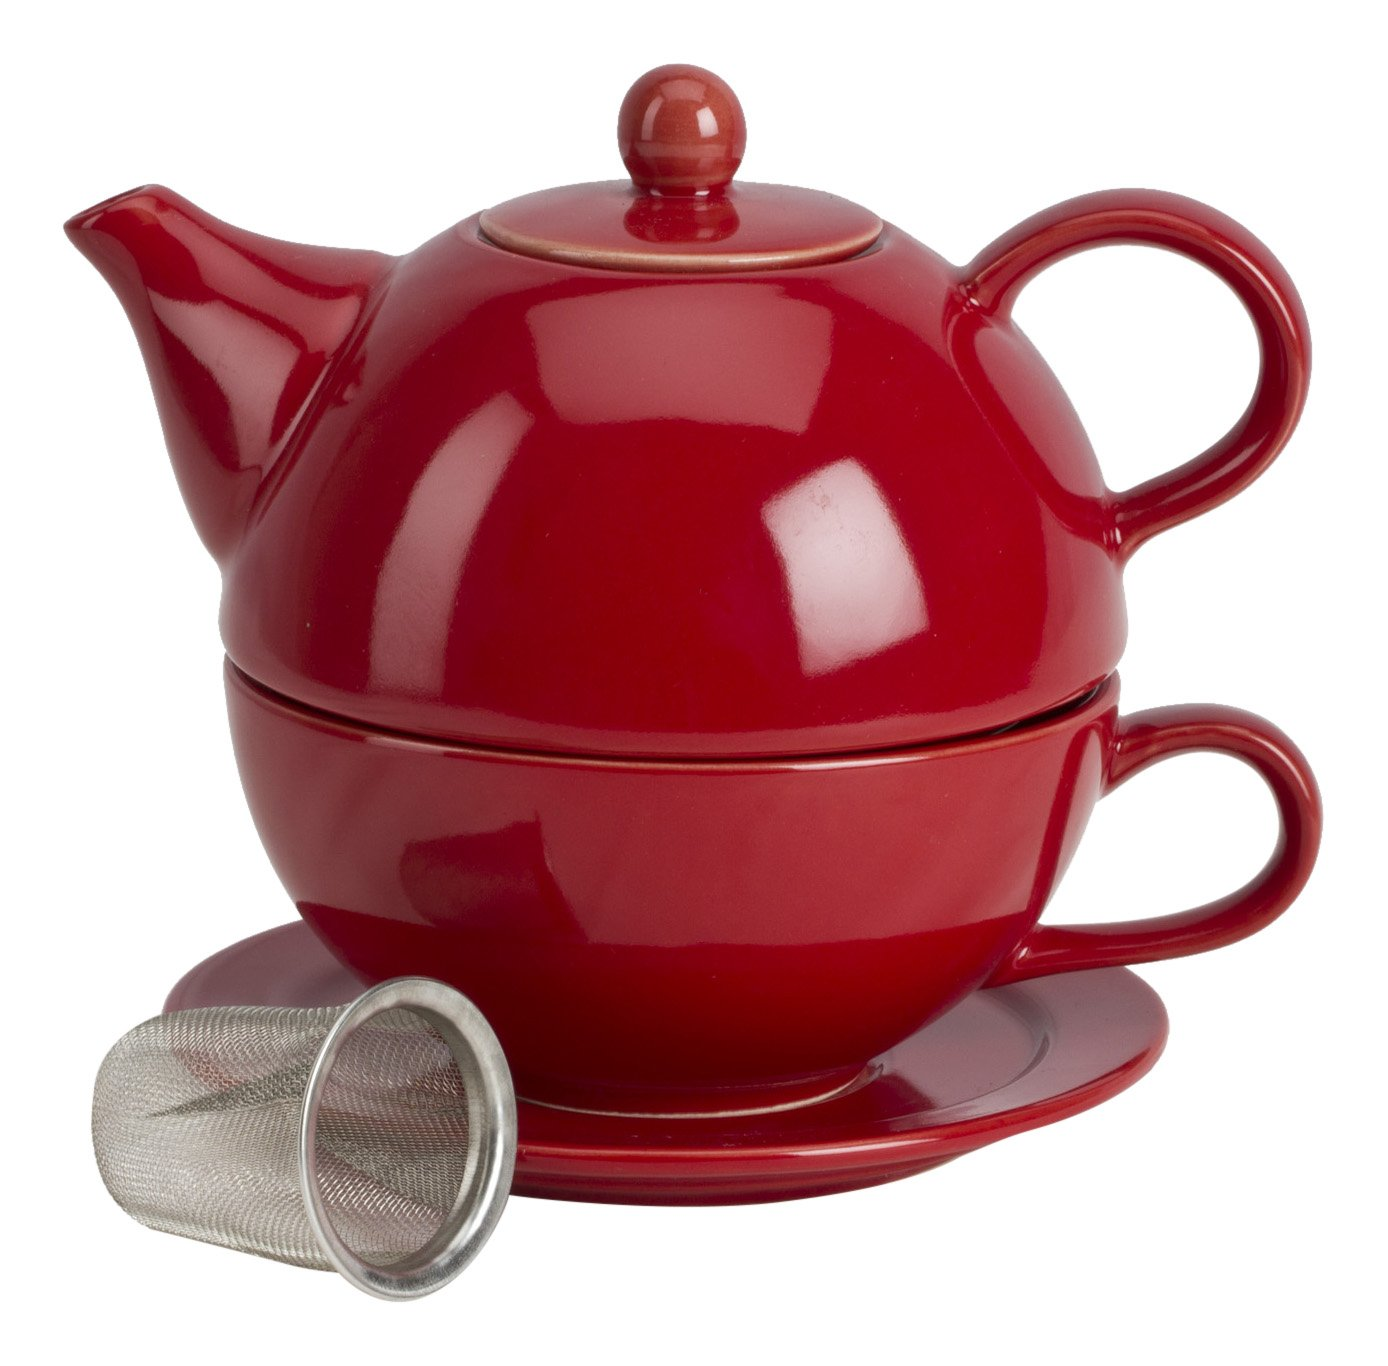 Omniware 1500165 5 Piece Tea For One Teapot Set with An Infuser, Aubergine